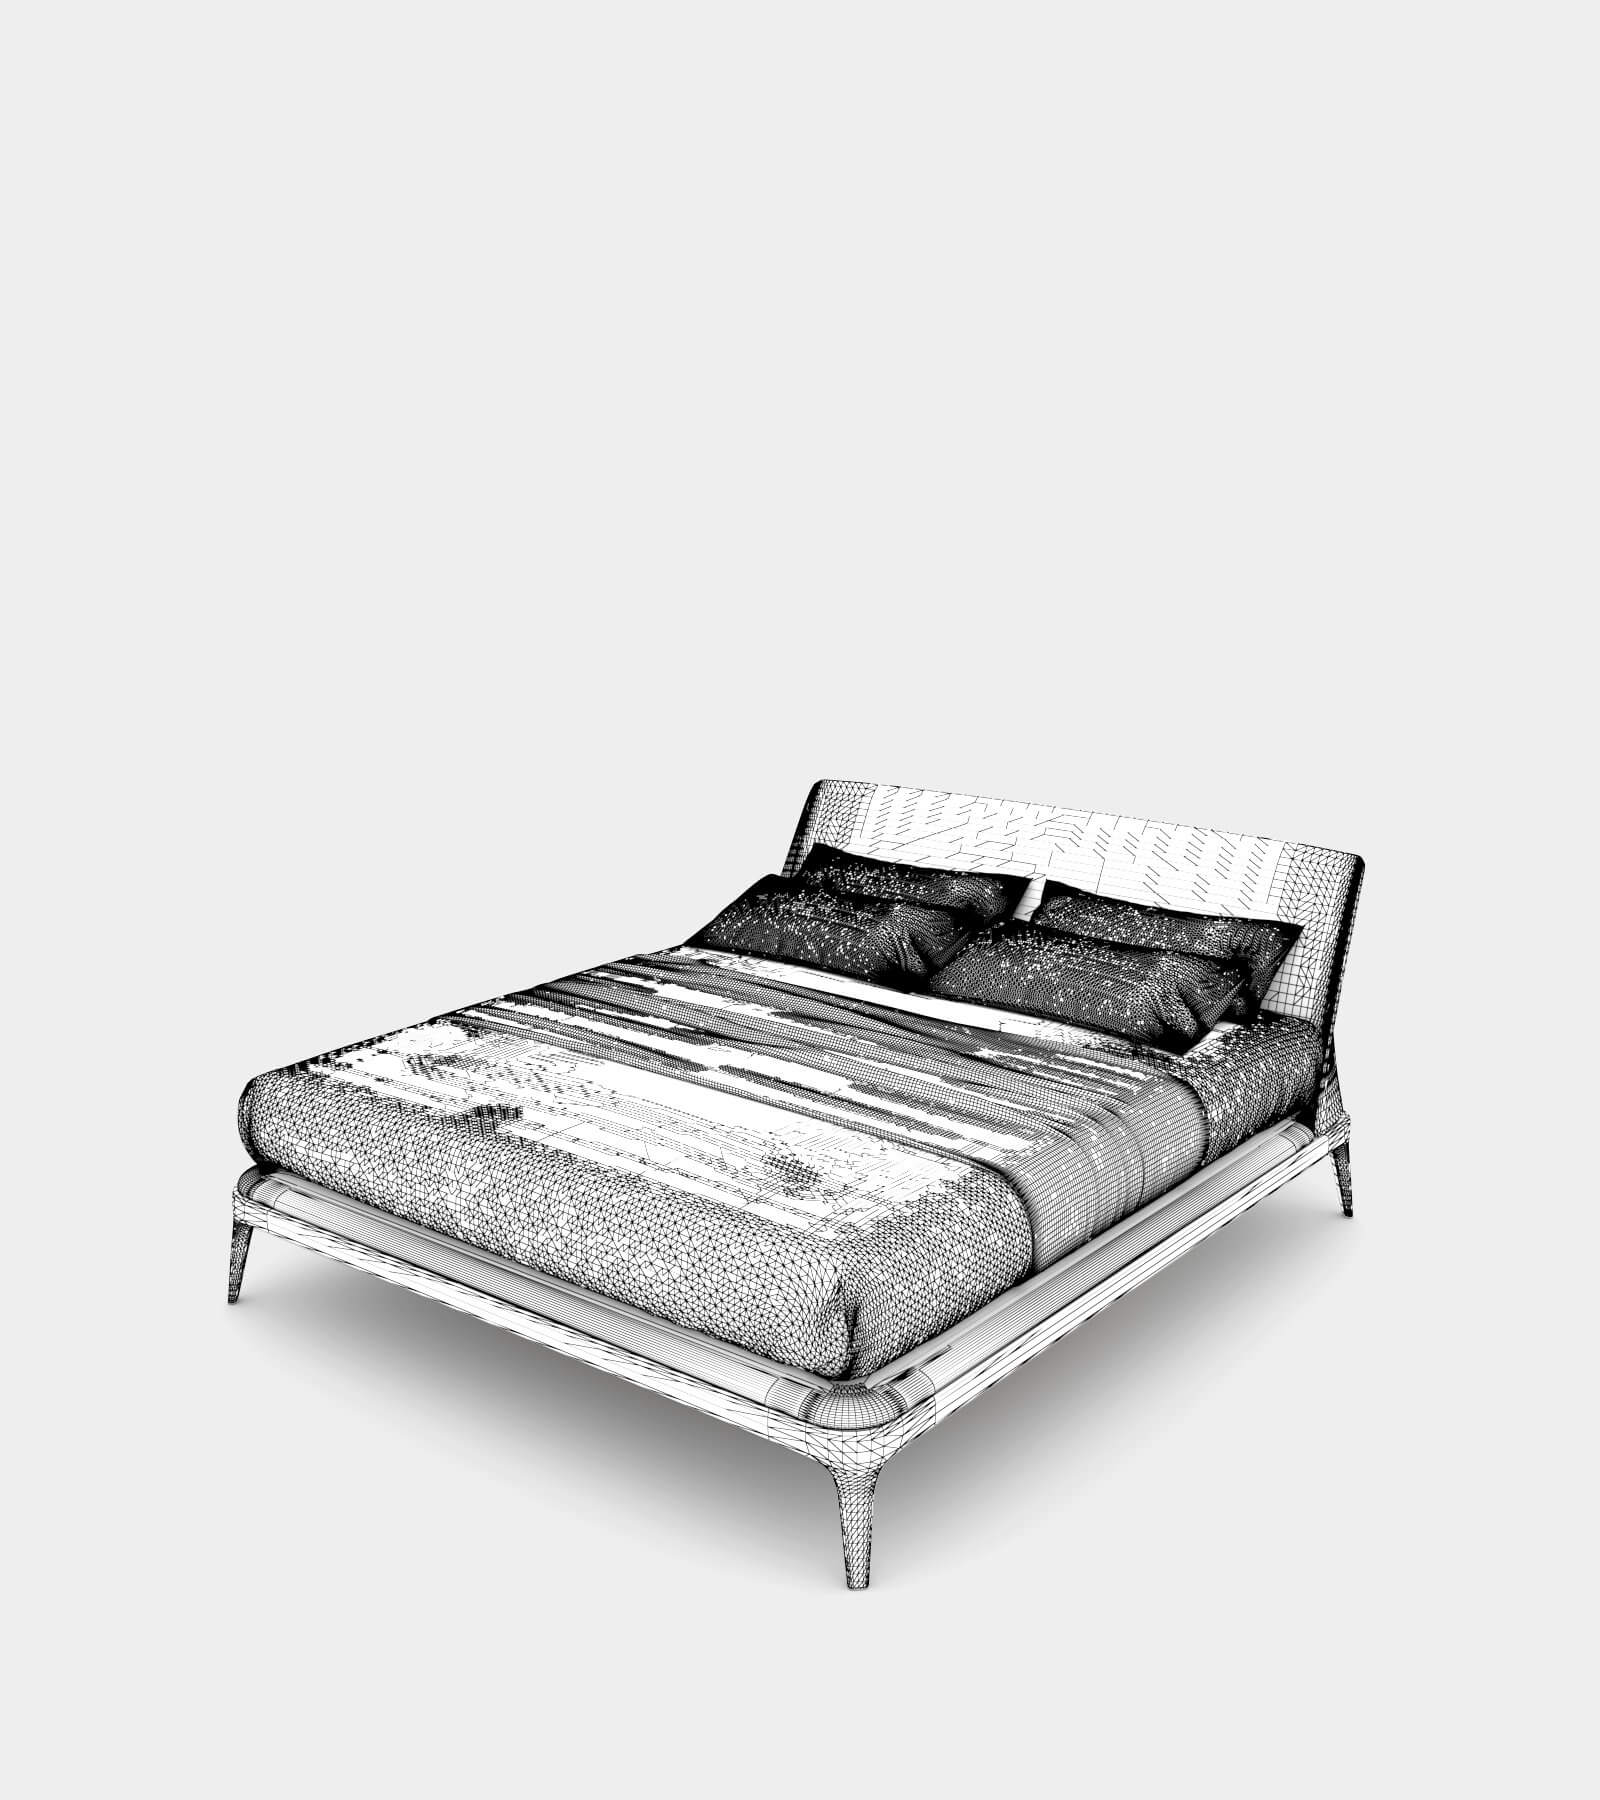 Modern double bed with bedhead-wire-1 3D Model